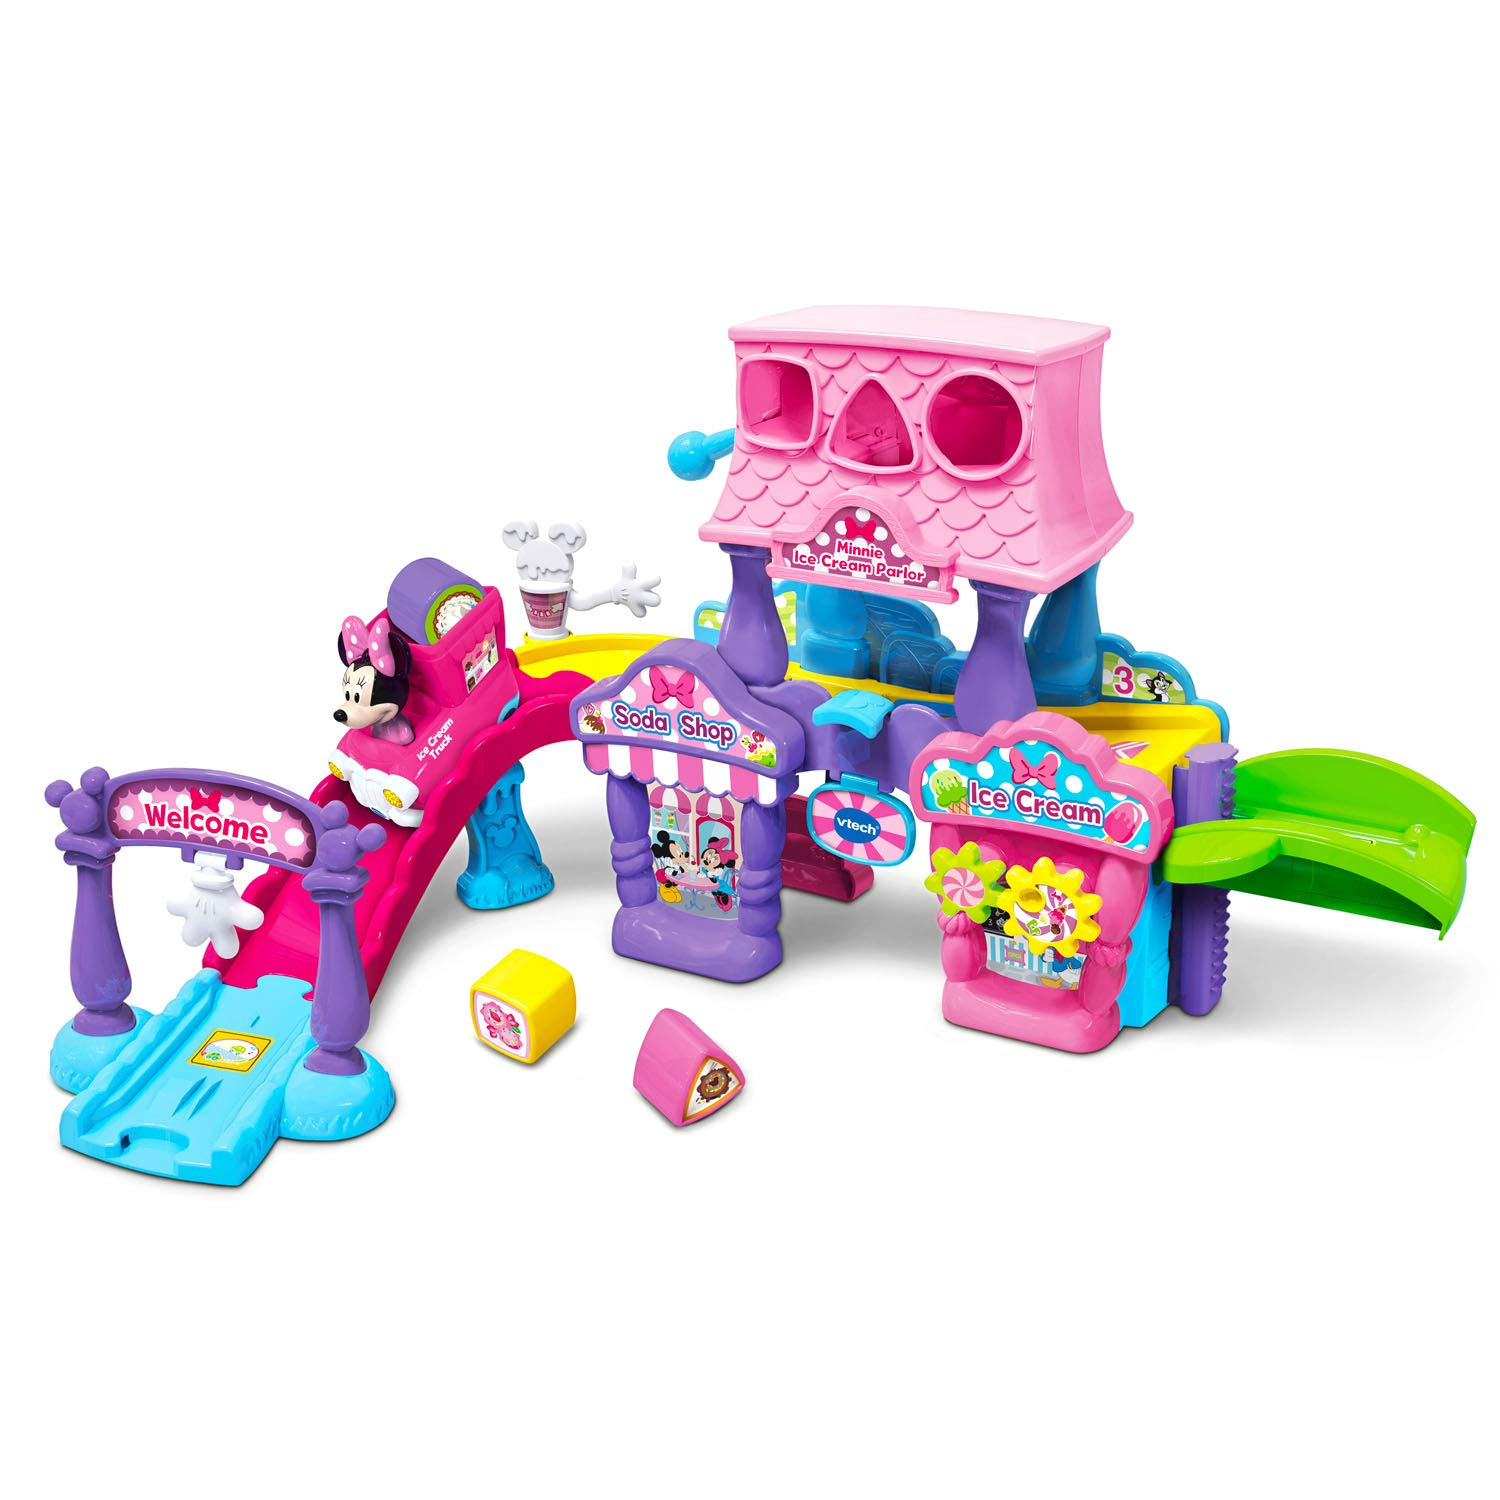 VTech Go! Go! Smart Wheels Minnie Mouse Ice Cream Parlor by VTech (Image #1)